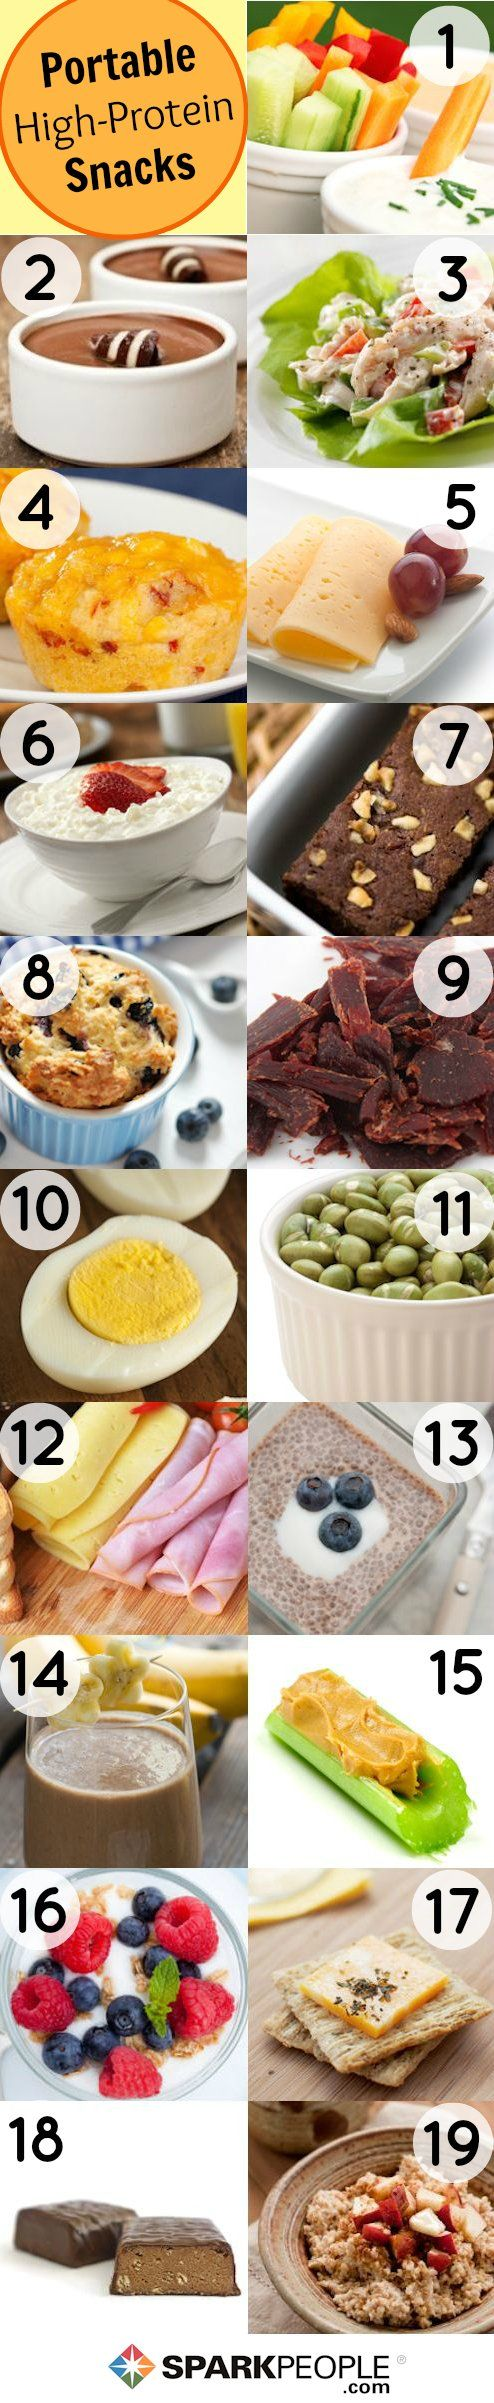 Take your protein to go with these quick and hearty bites.